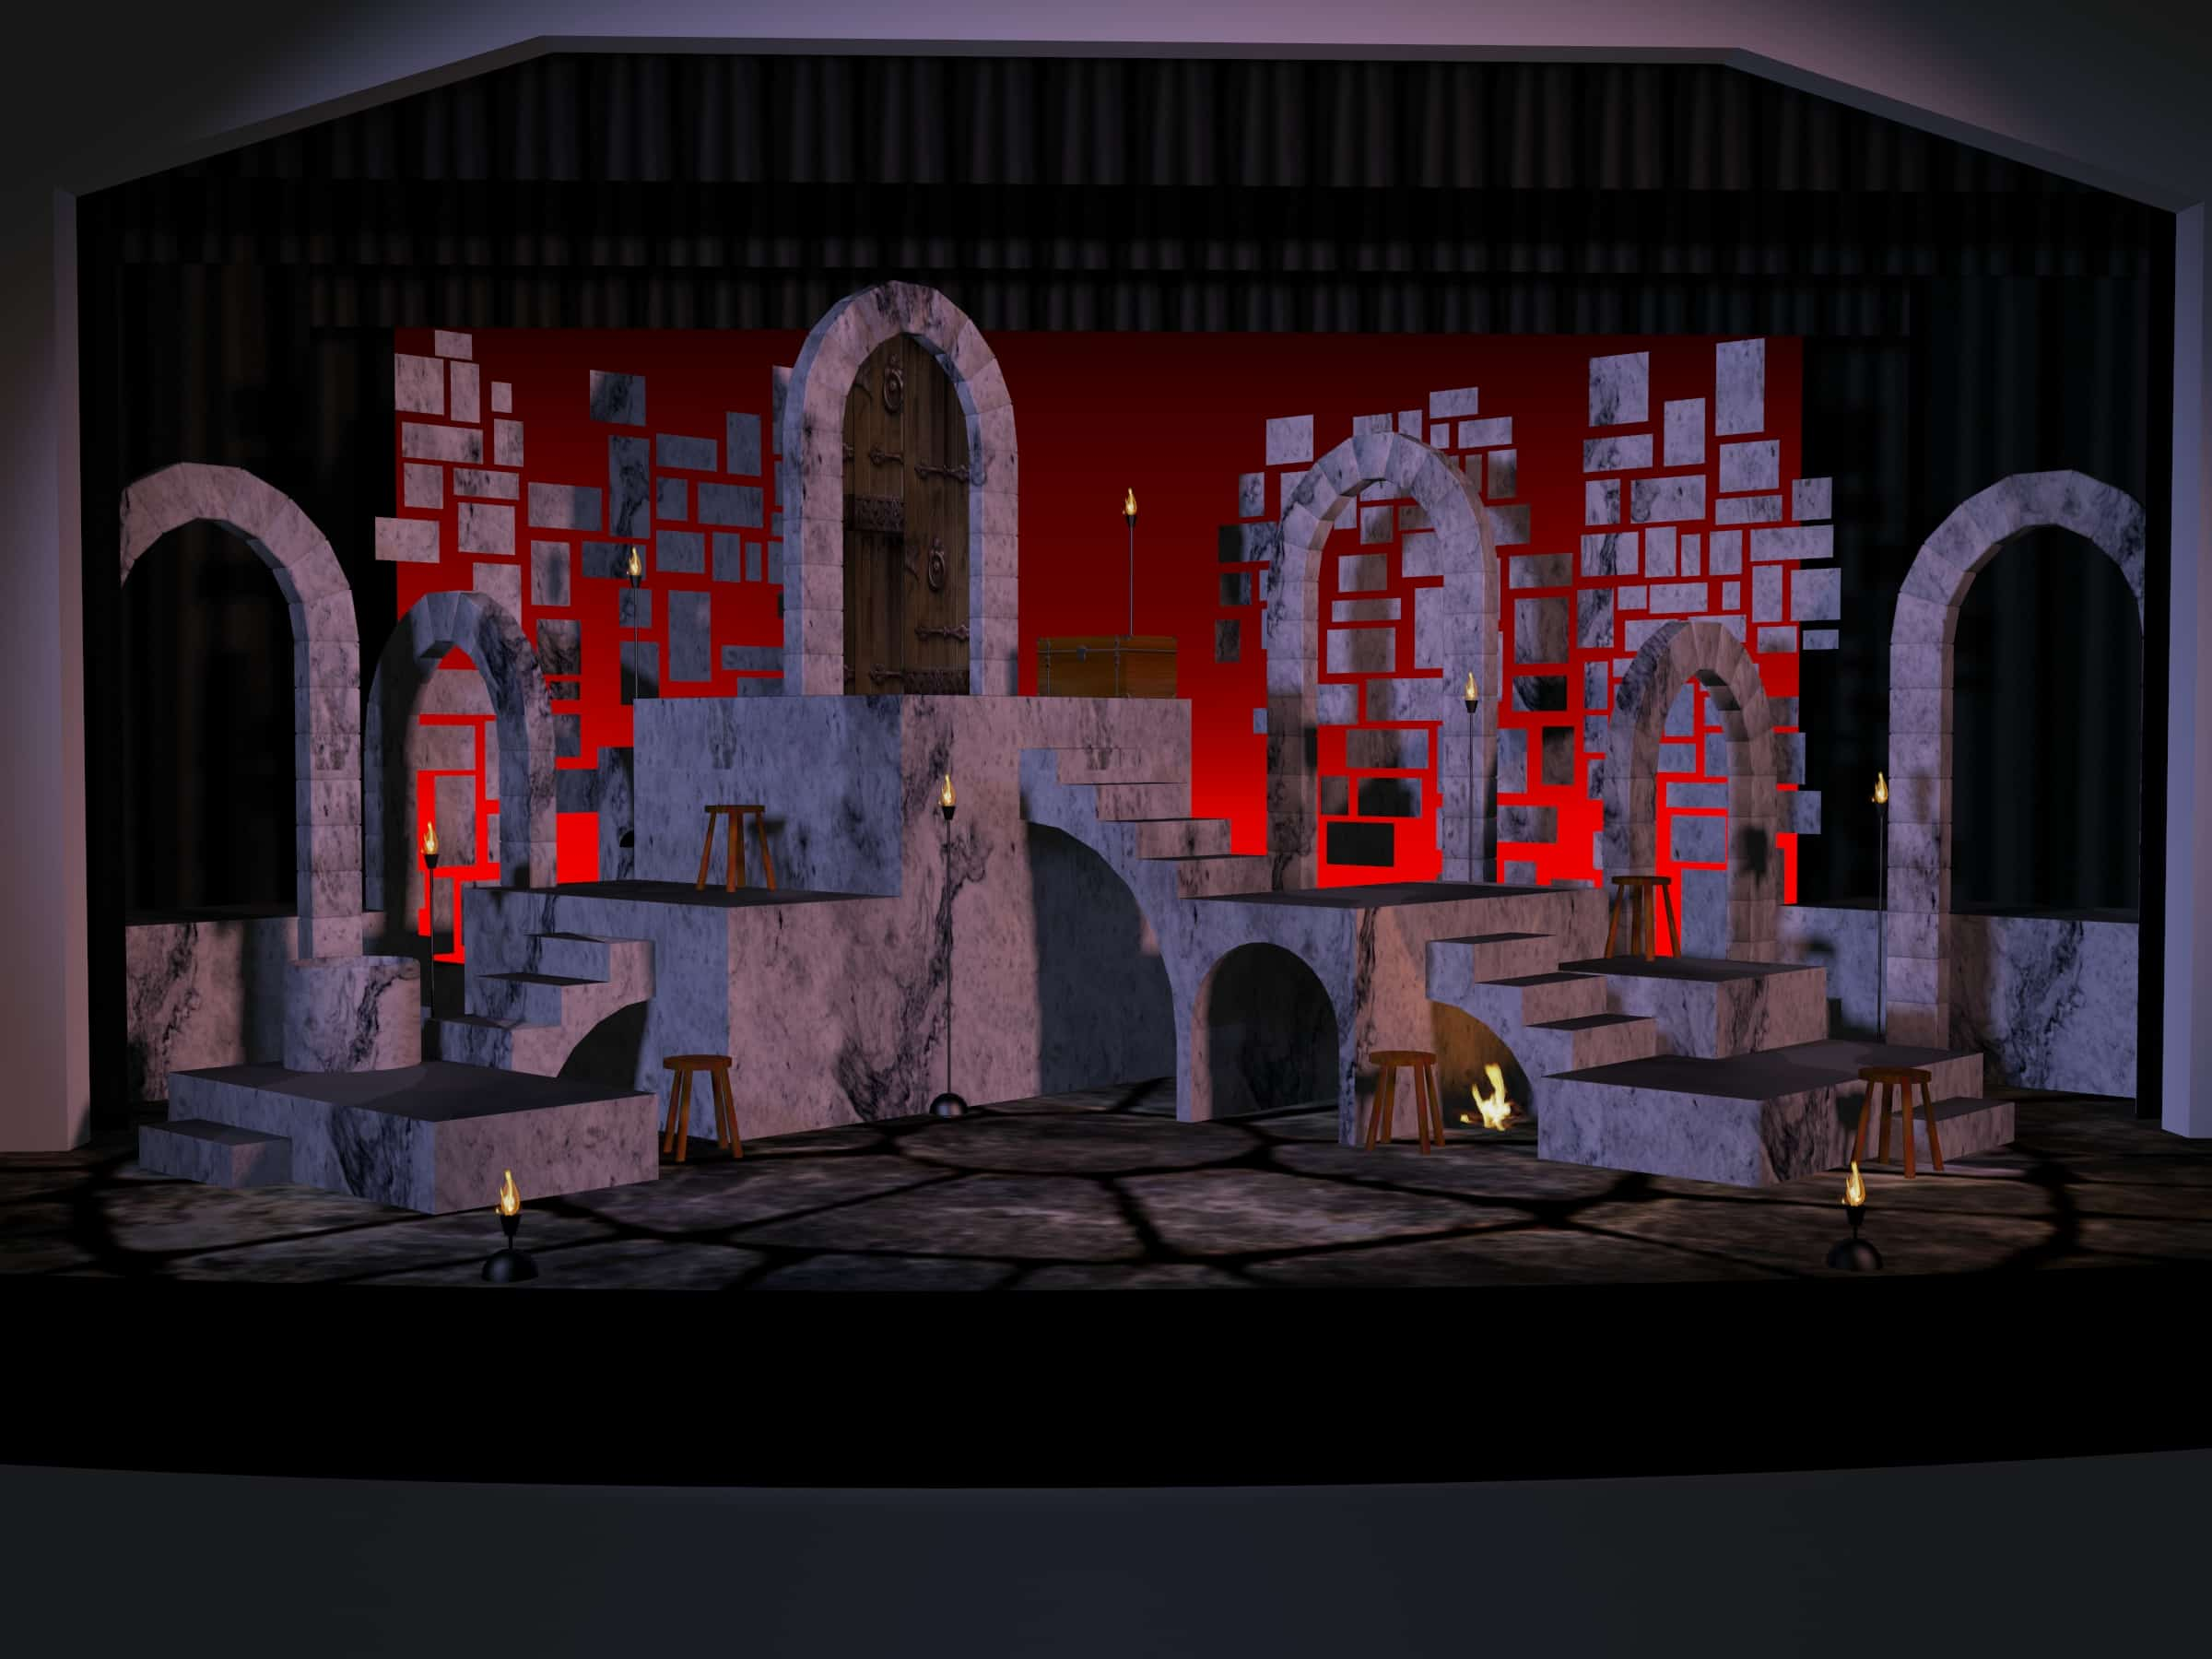 Digital set rendering for Man of La Mancha. Stone arches, flicker-flame torches, a fire burns under a staircase. Red cyclorama behind reveals the floating stone bricks and the lack of walls on the set.